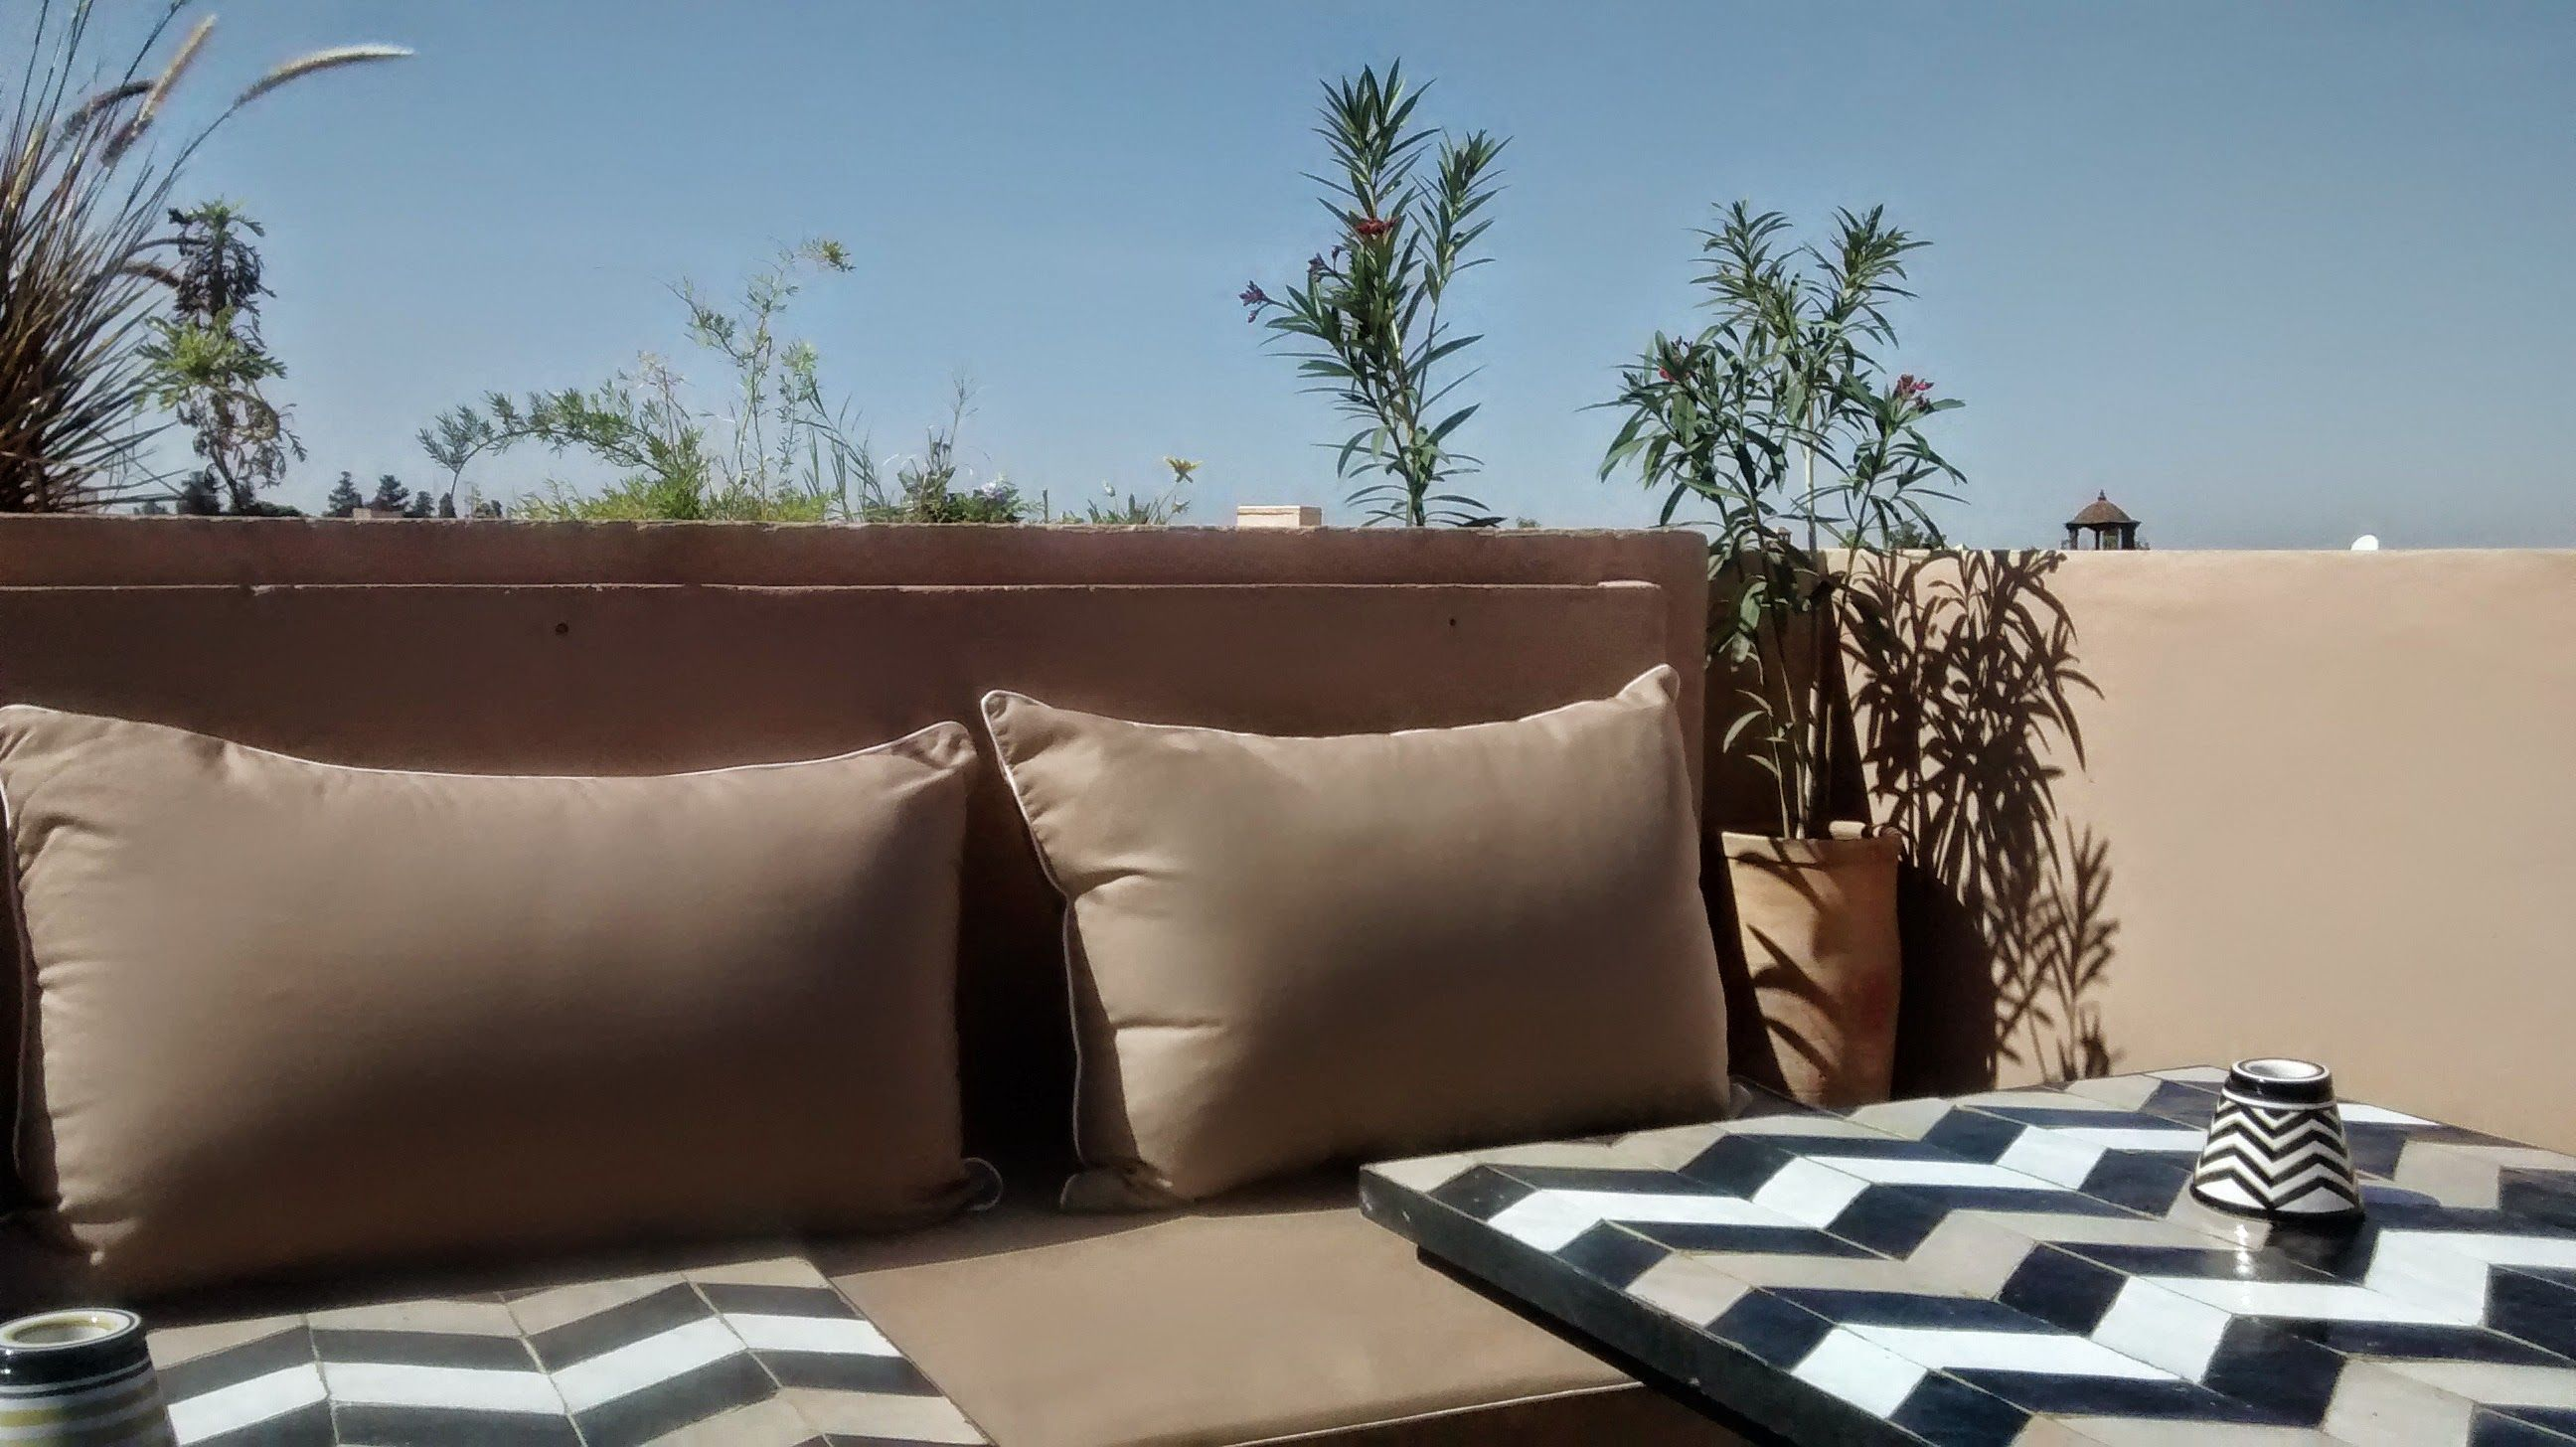 Nomad Restaurant Marrakech Serves Delicious Modern Moroccan Dishes Superbly Located In A Corner Of The